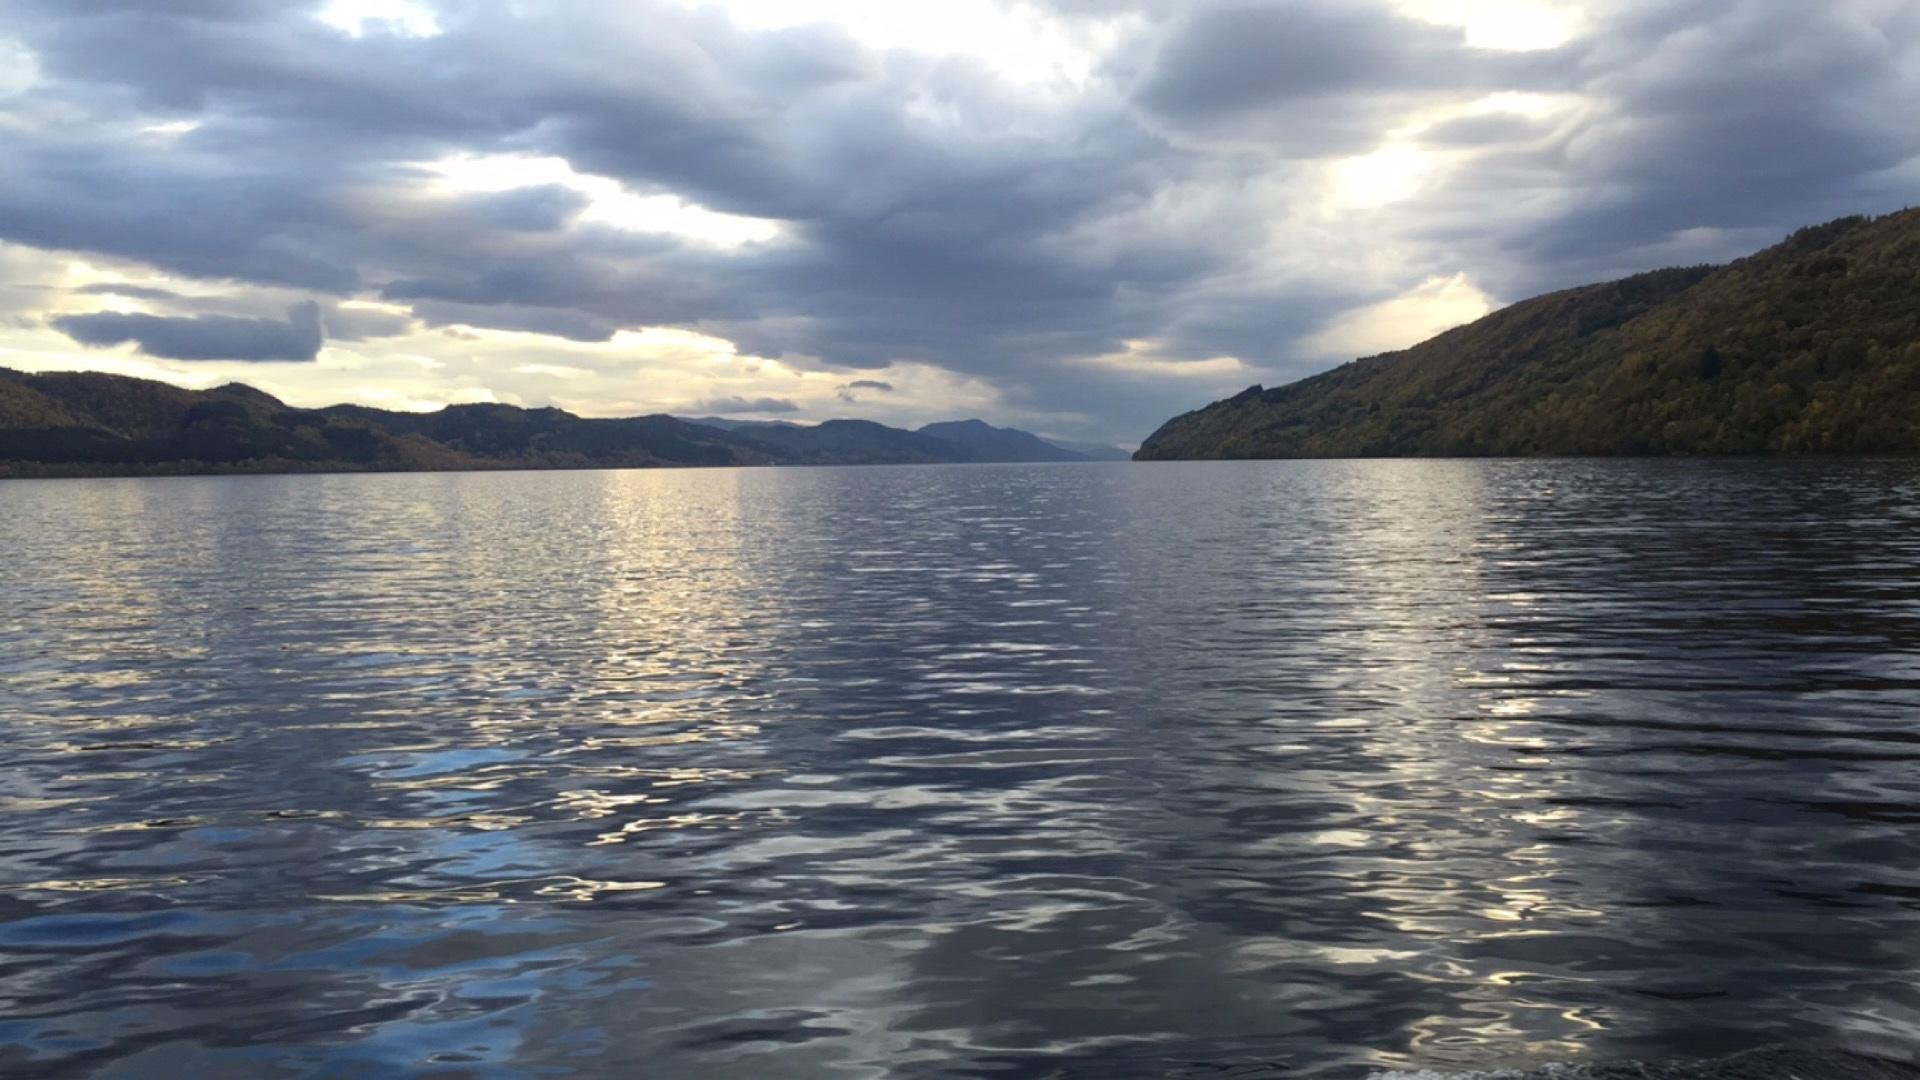 download Why Males Exist, An Inquiry into the